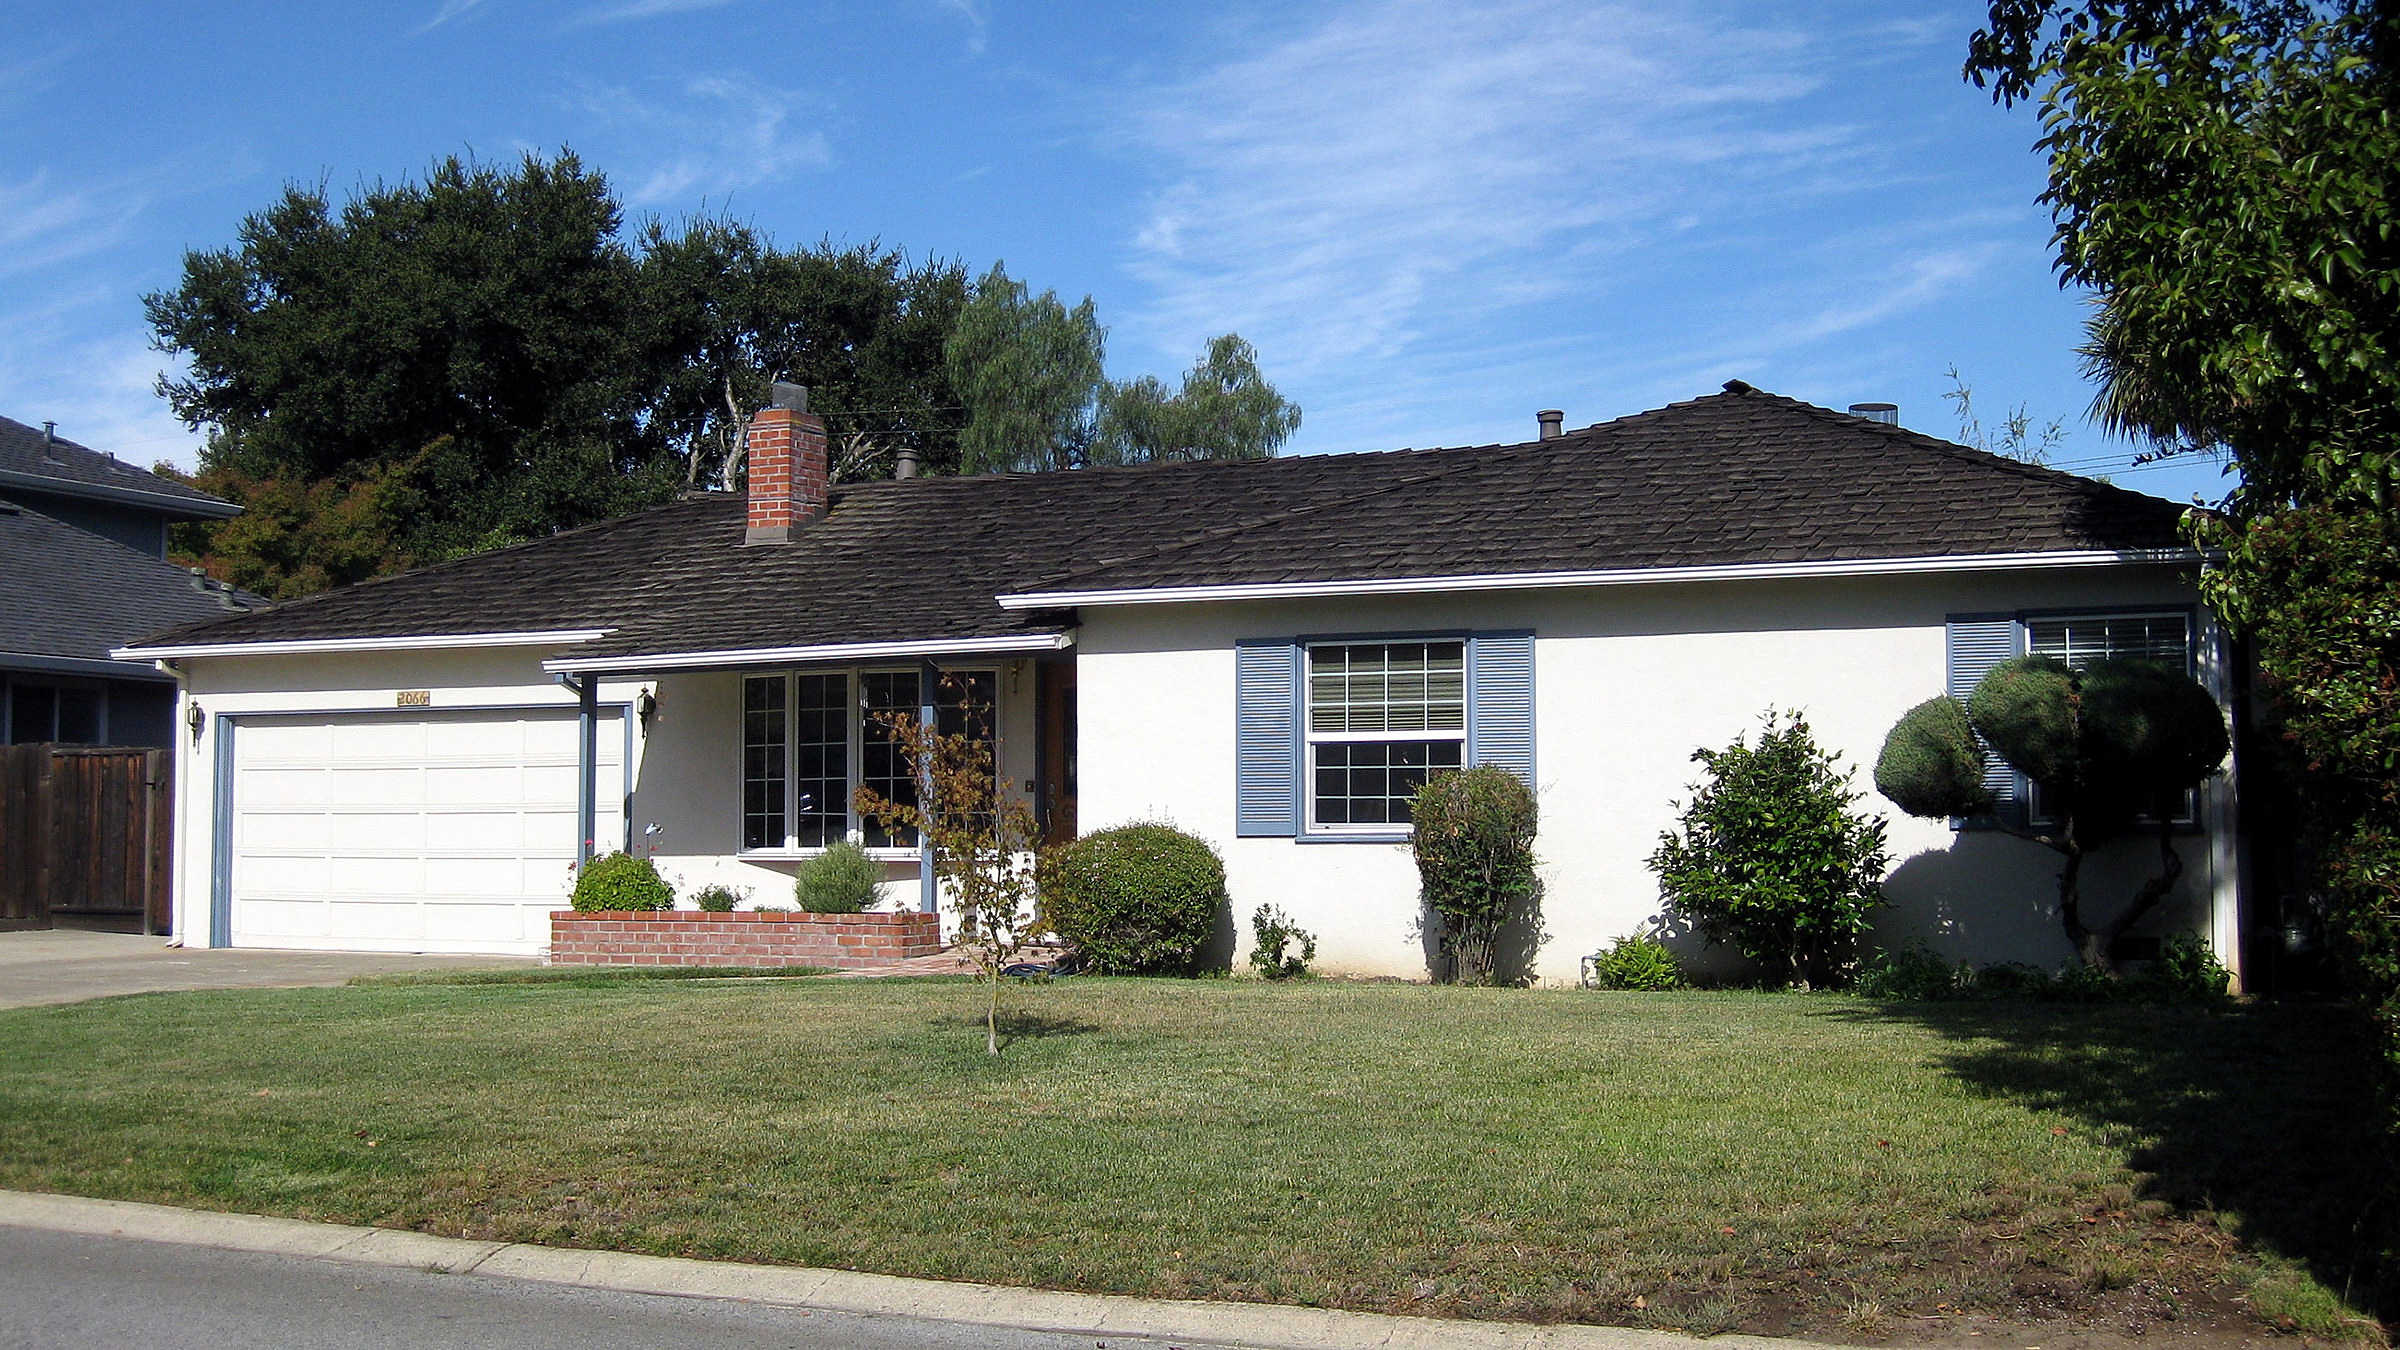 Steve Jobs Childhood Home In Los Altos, CA And Garage Where The First Apple  Computer